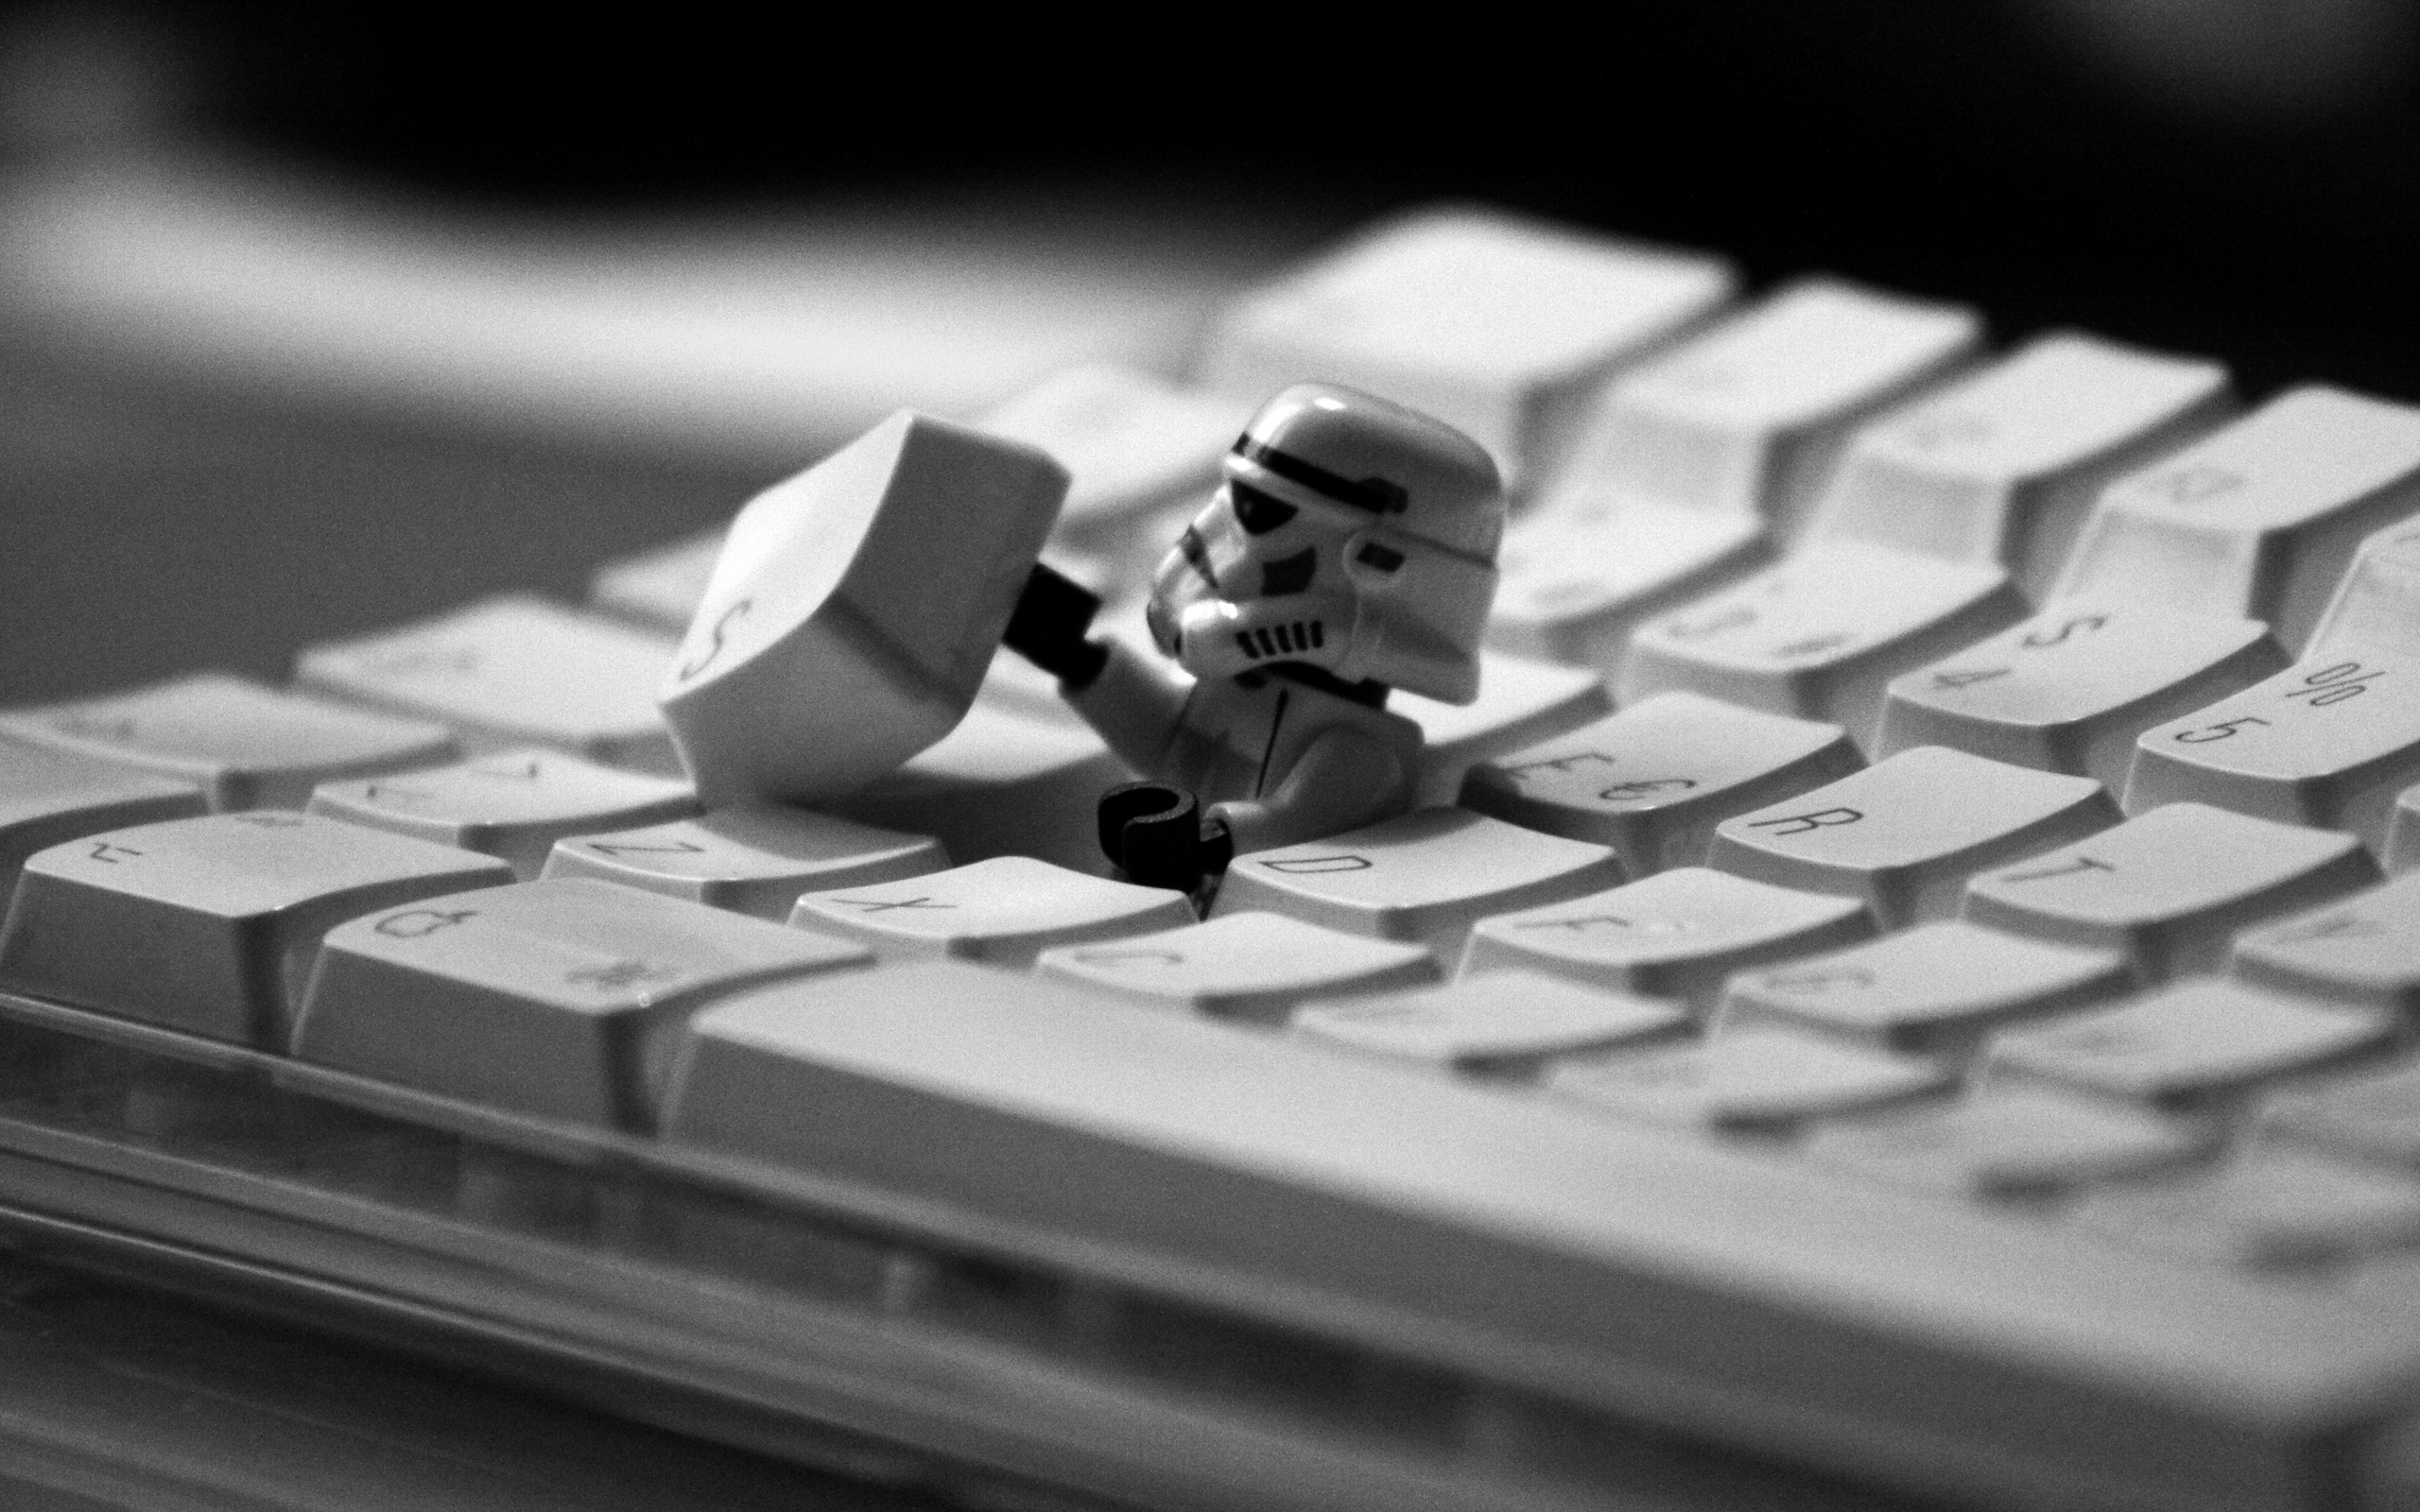 Stormtrooper In The Keyboard Wallpaper Hd Wallpapers Hd Backgrounds Tumblr Backgrounds Images Pictures